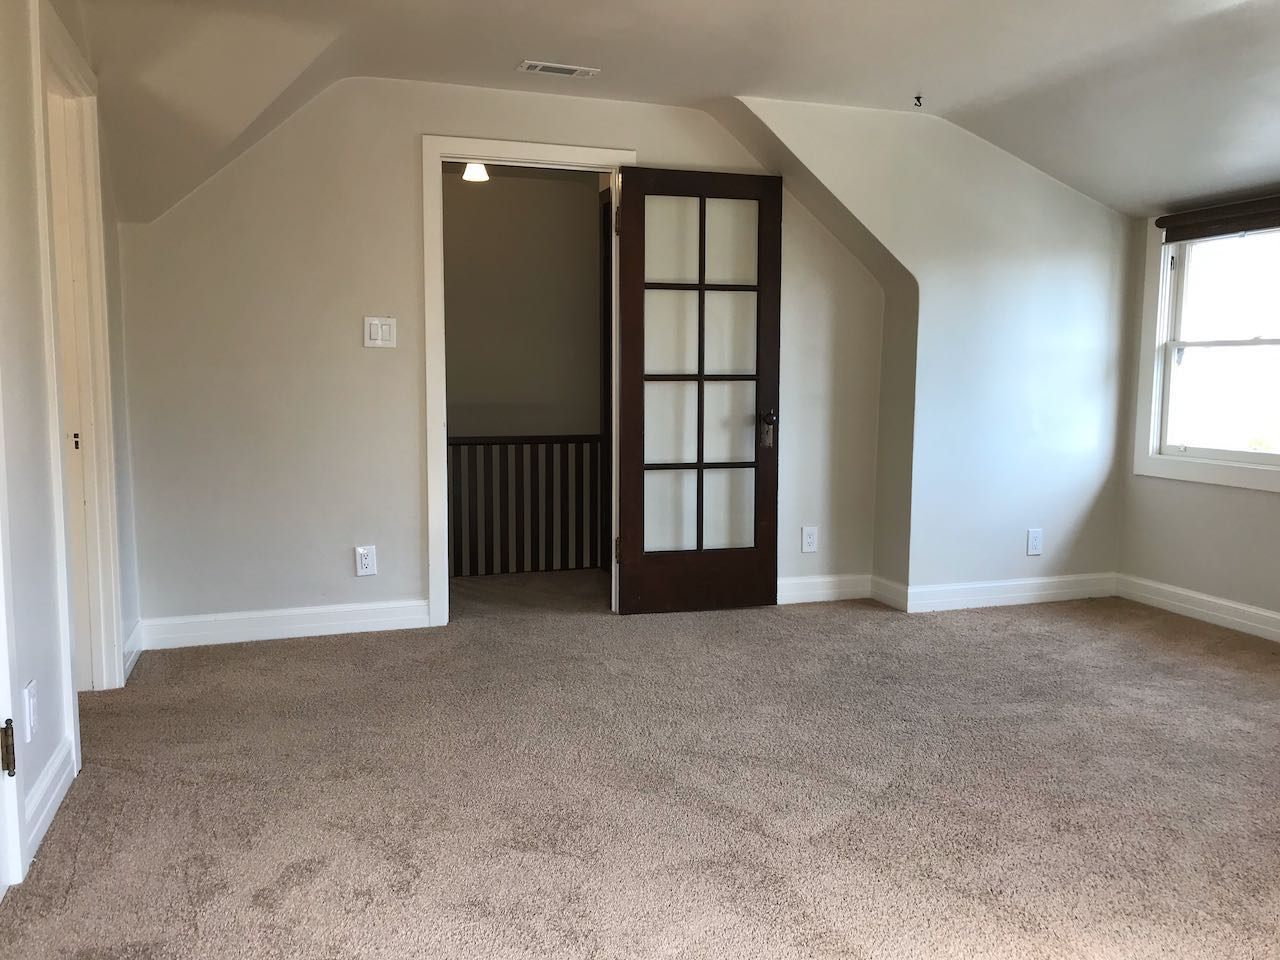 Spacious Entry Bedroom or Living Area